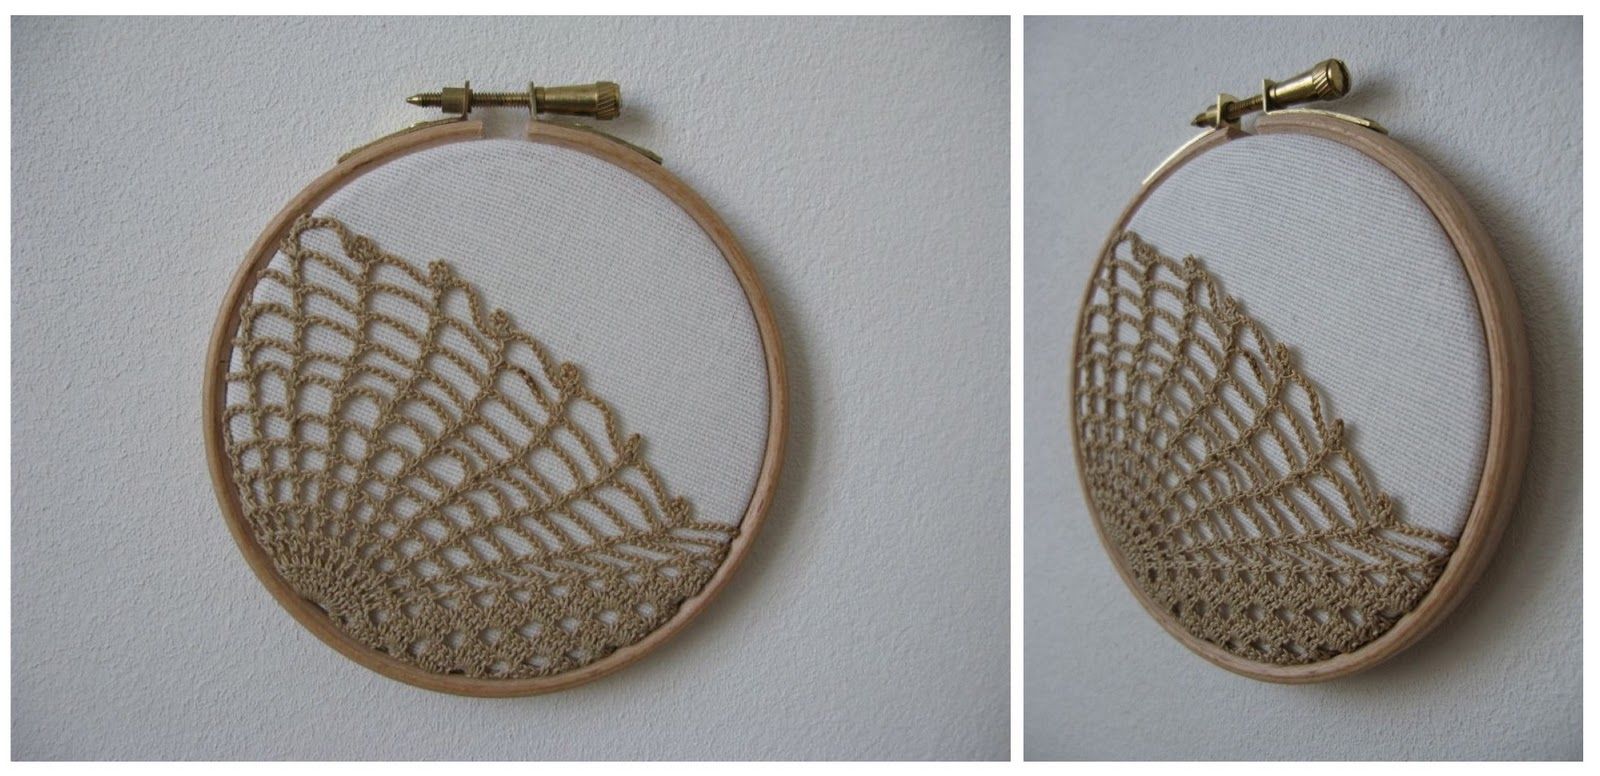 E17Craft: Crochet Wall Art & Lavender Sachets With Regard To Best And Newest Crochet Wall Art (View 14 of 20)